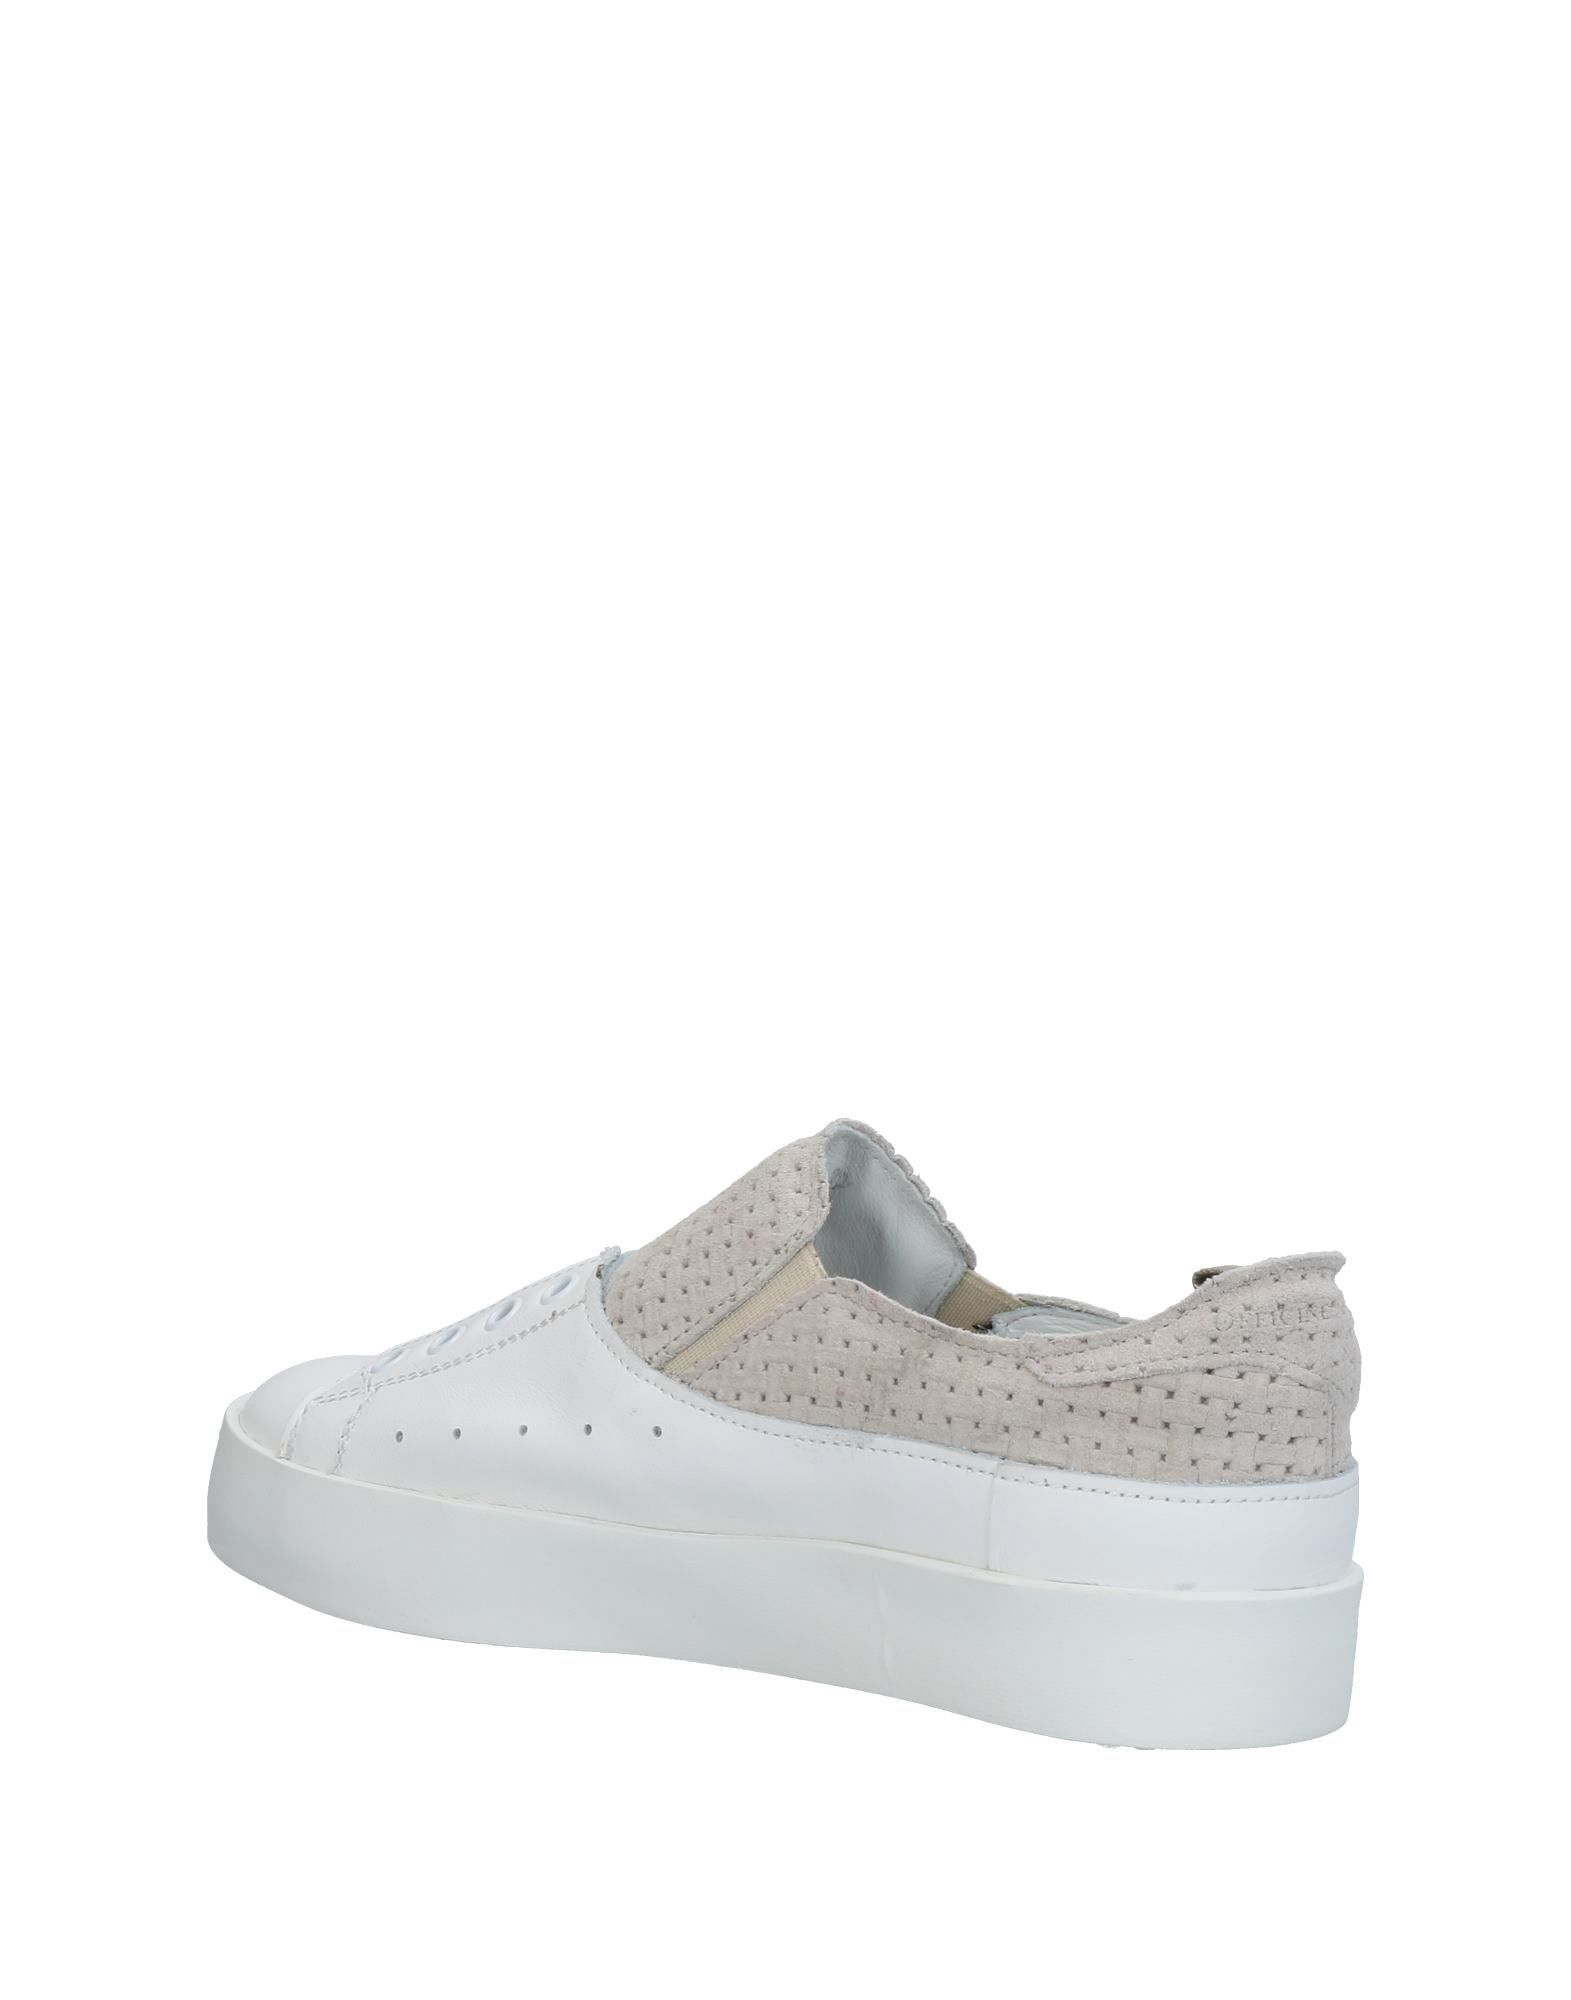 Officine Italia Creative Italia Officine Sneakers Damen  11445365PR Neue Schuhe 25e23a